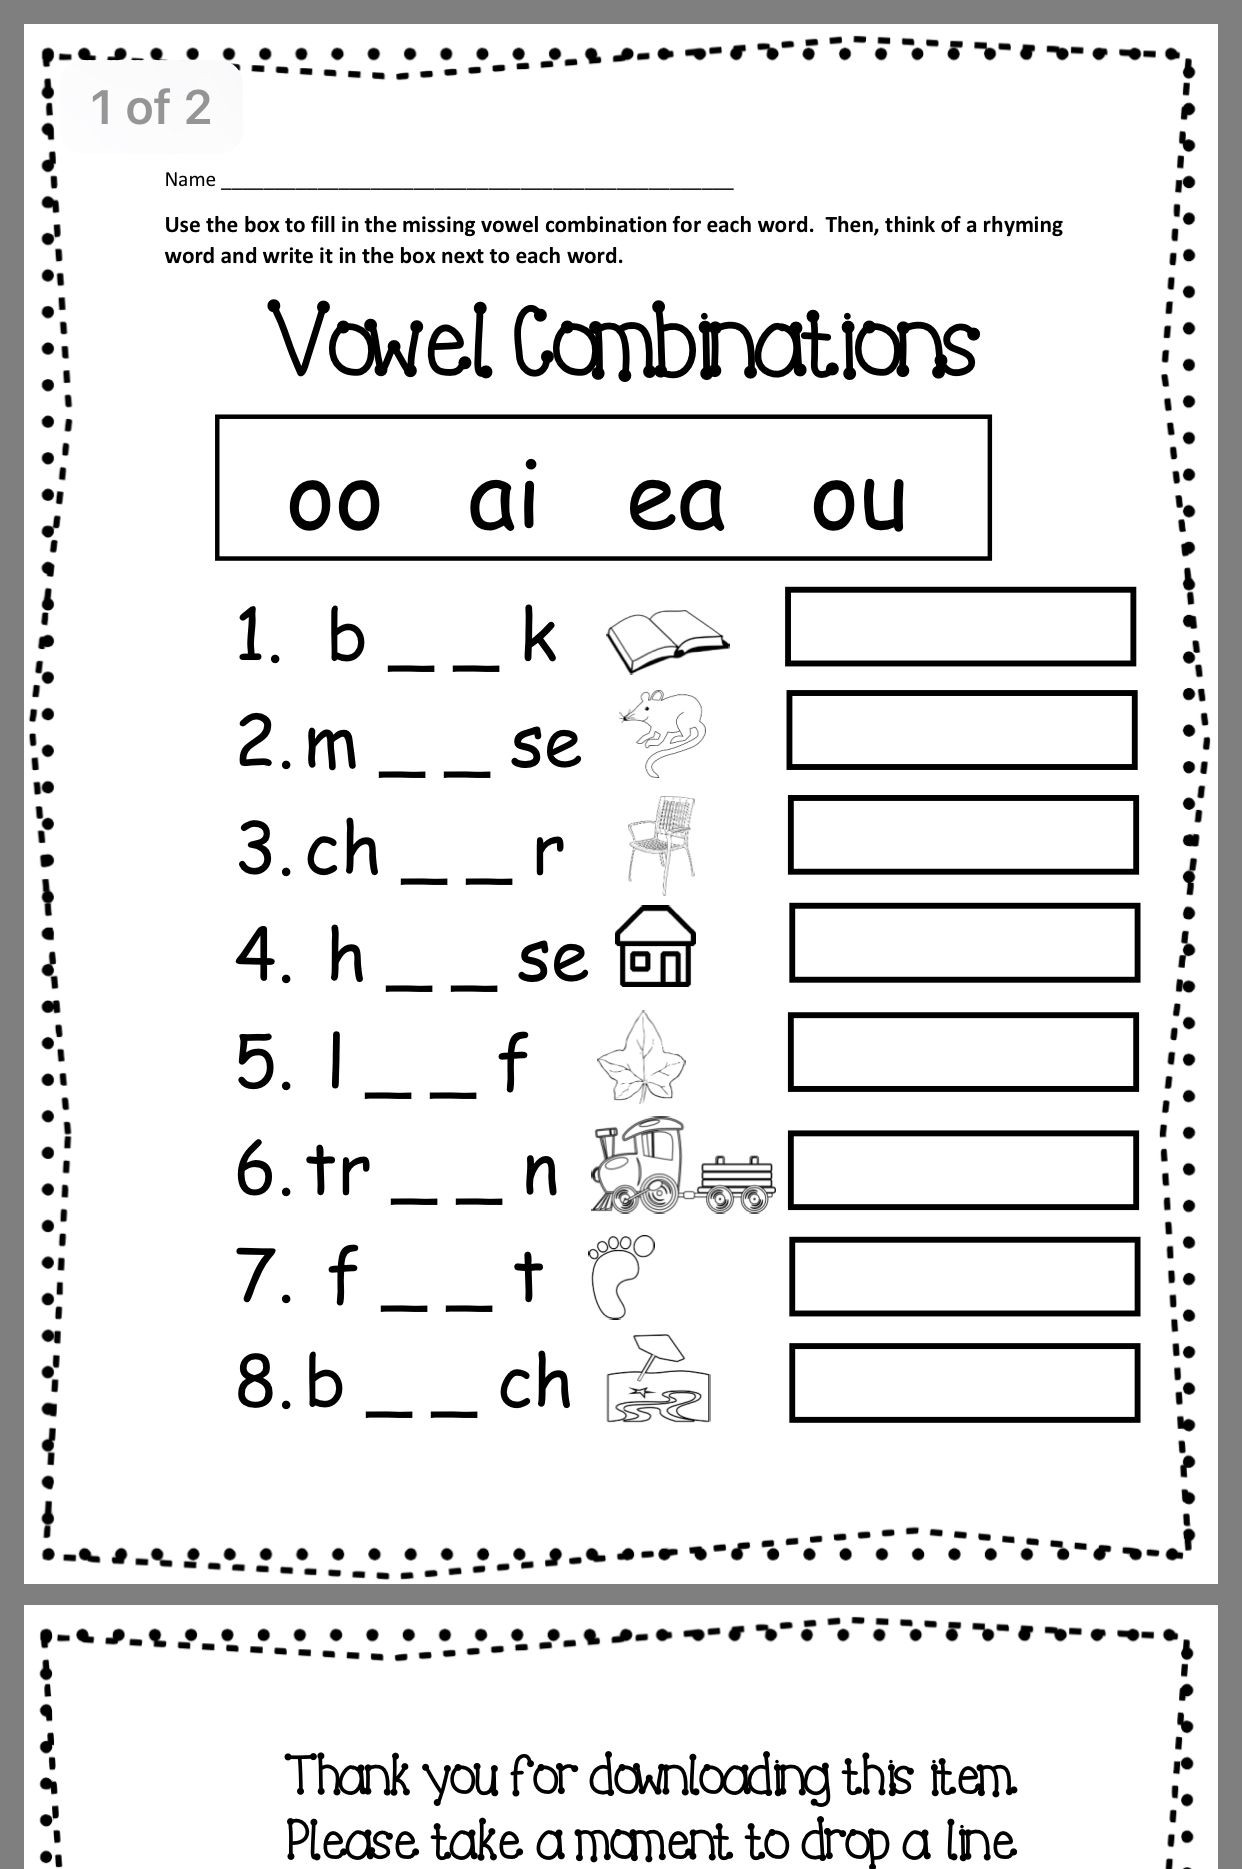 hight resolution of Adult Phonics Worksheets   Printable Worksheets and Activities for  Teachers